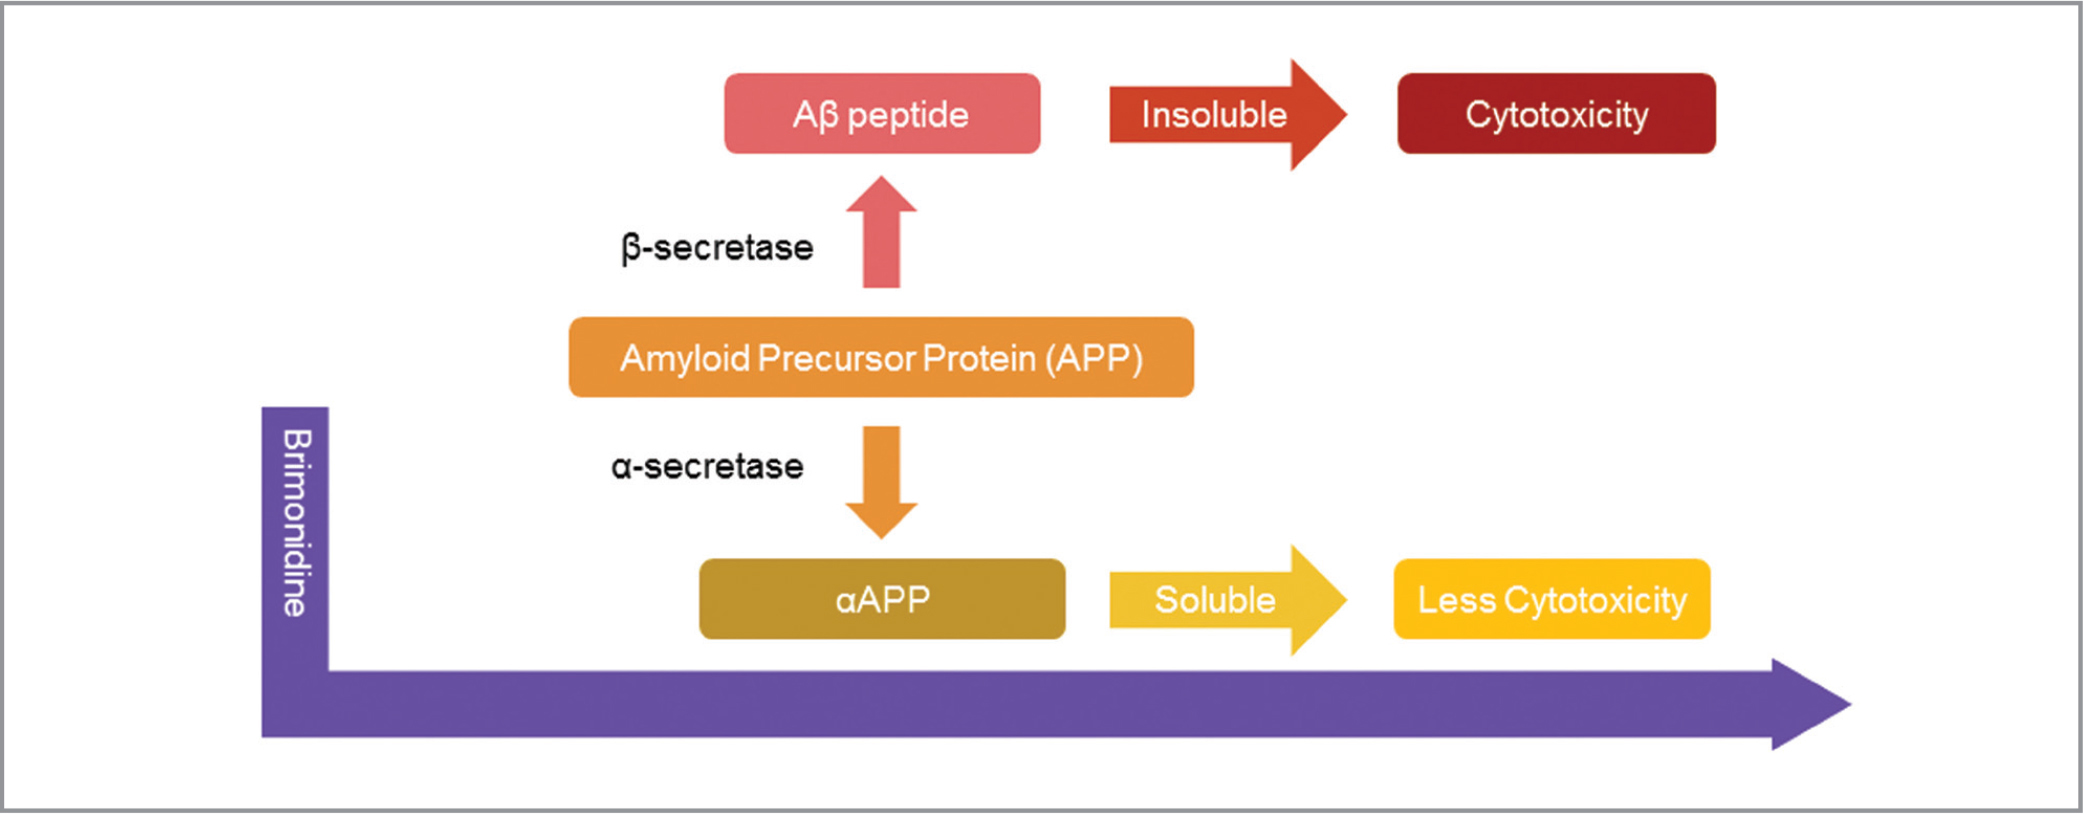 Processing of amyloid precursor protein (APP) and brimonidine. APP can be cleaved by α-secretase to produce a more soluble peptide, αAPP, which is considered less toxic than Aβ. Processing of APP by β-secretase leads to the production of Aβ and its attendant cytotoxicity. Brimonidine is thought to preferentially favor production of αAPP, thereby reducing overall cytotoxicity.